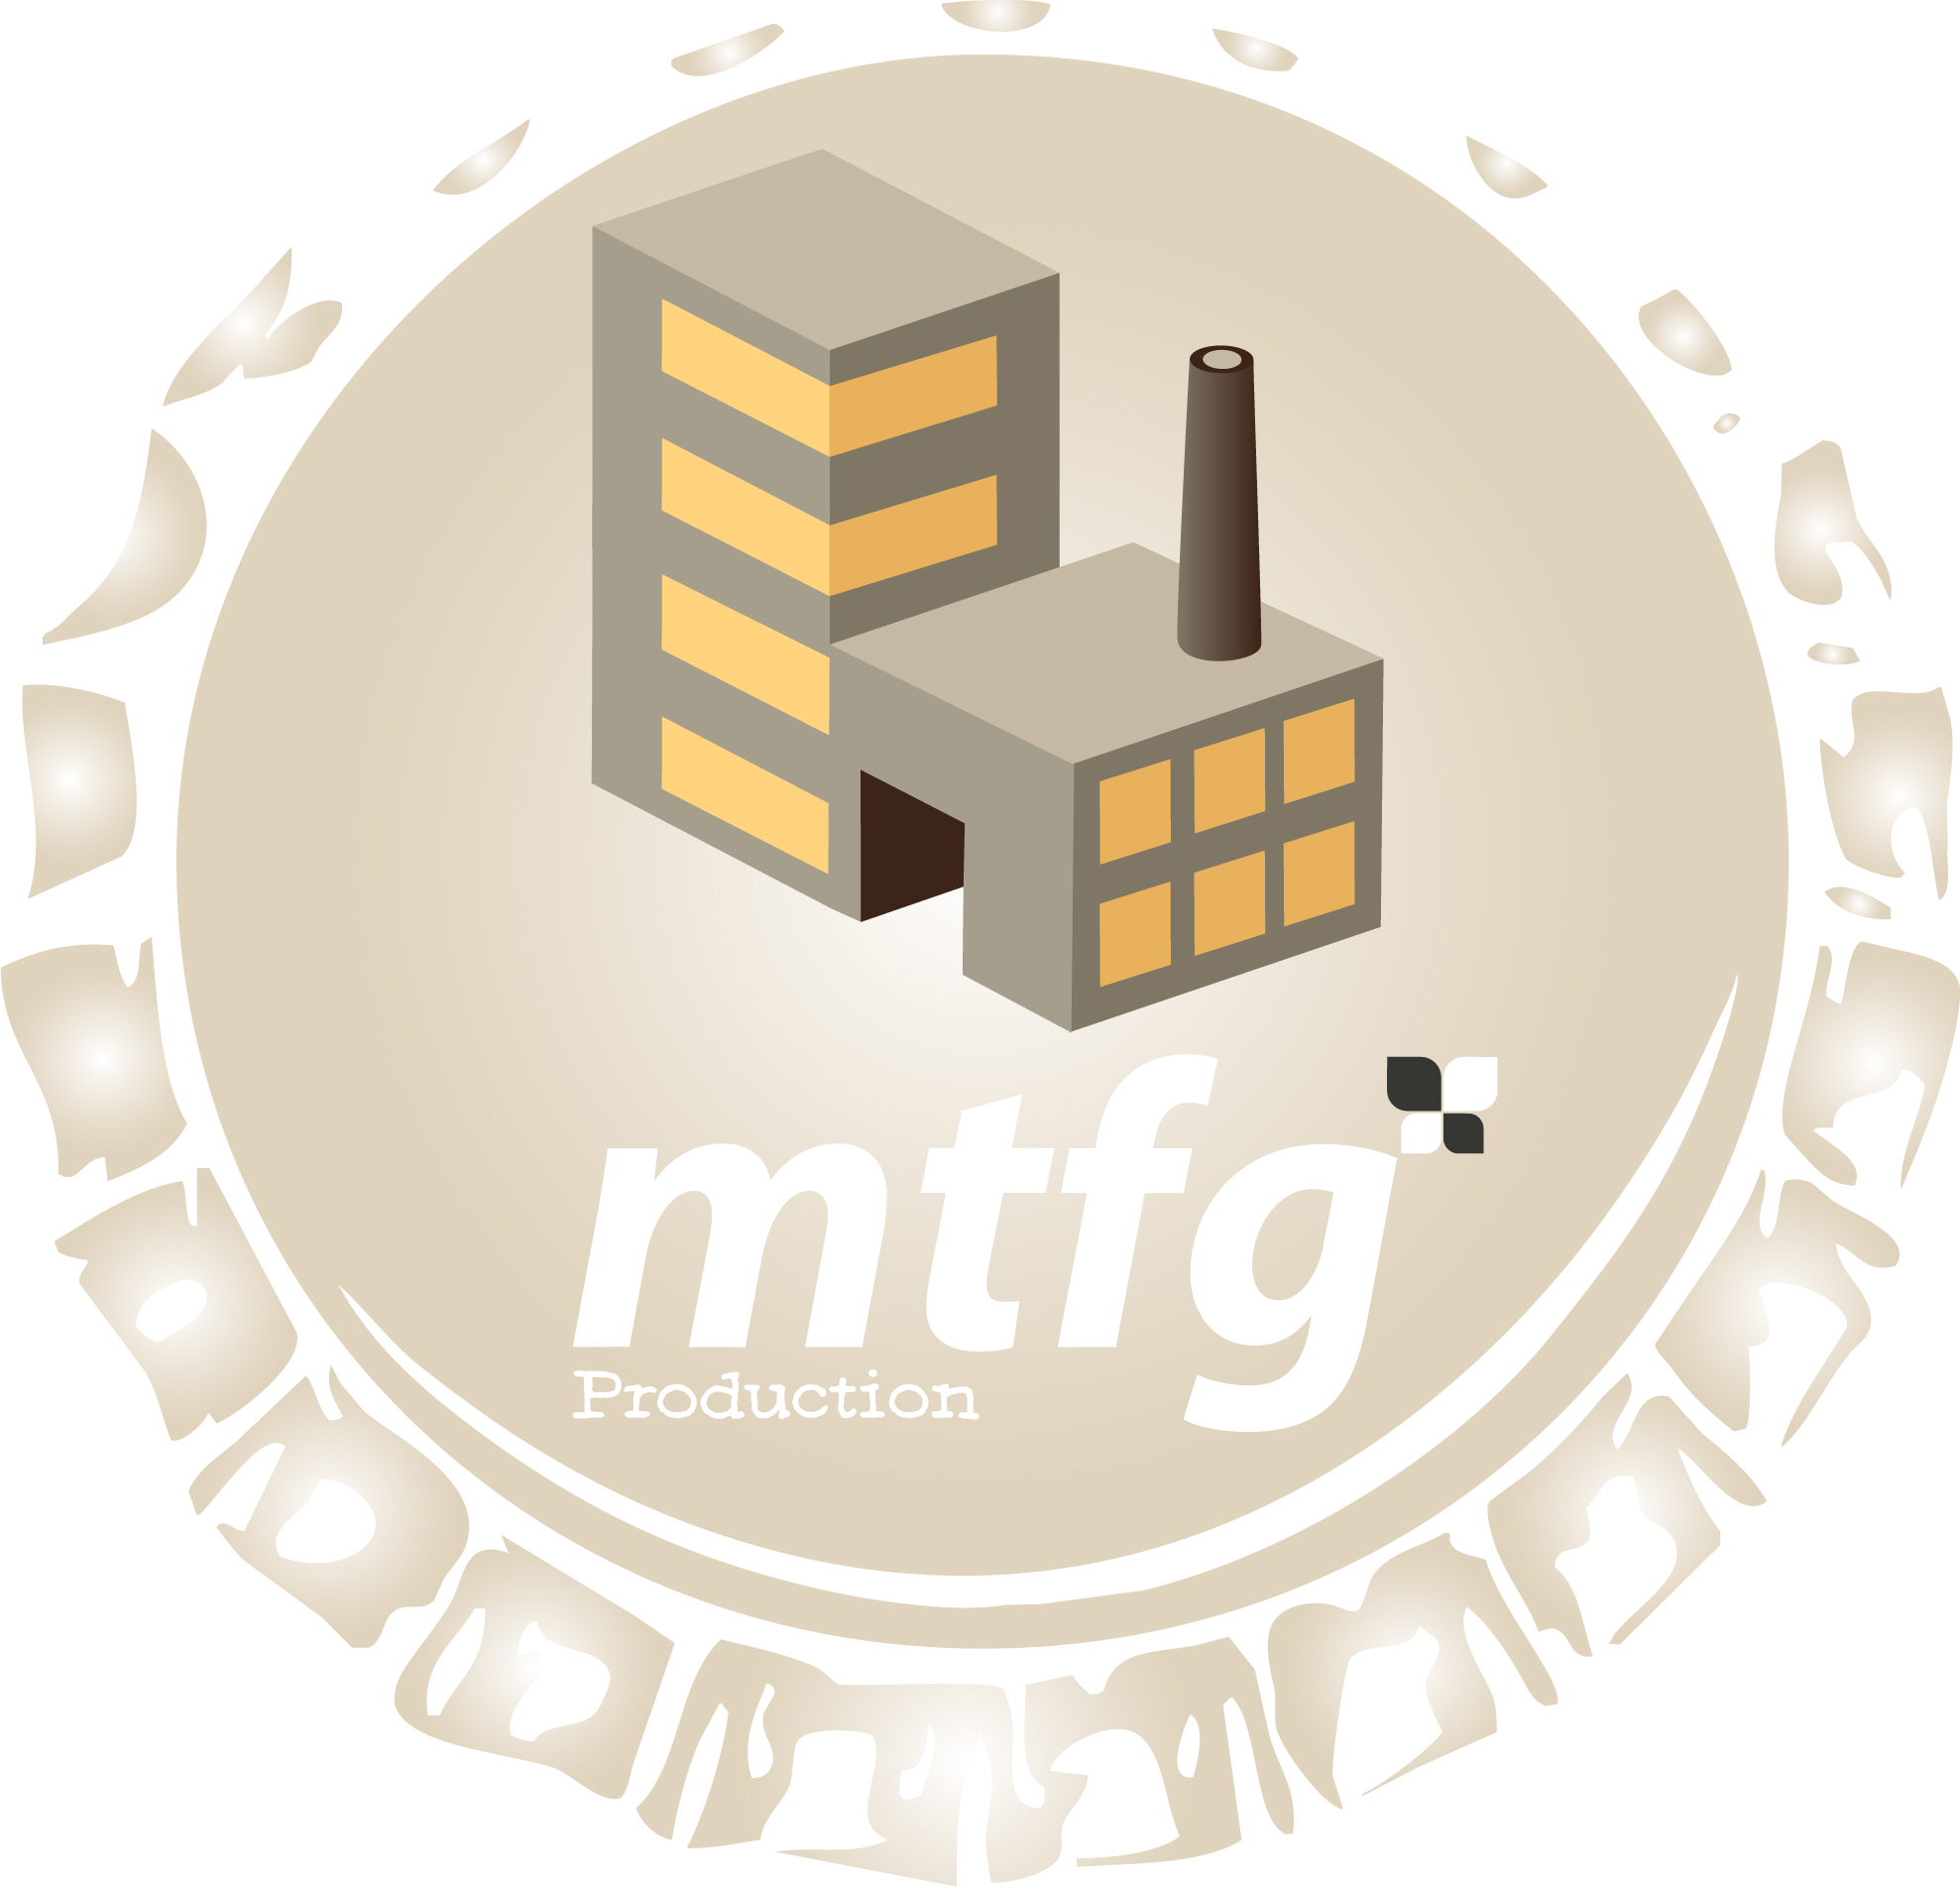 MTFG Production